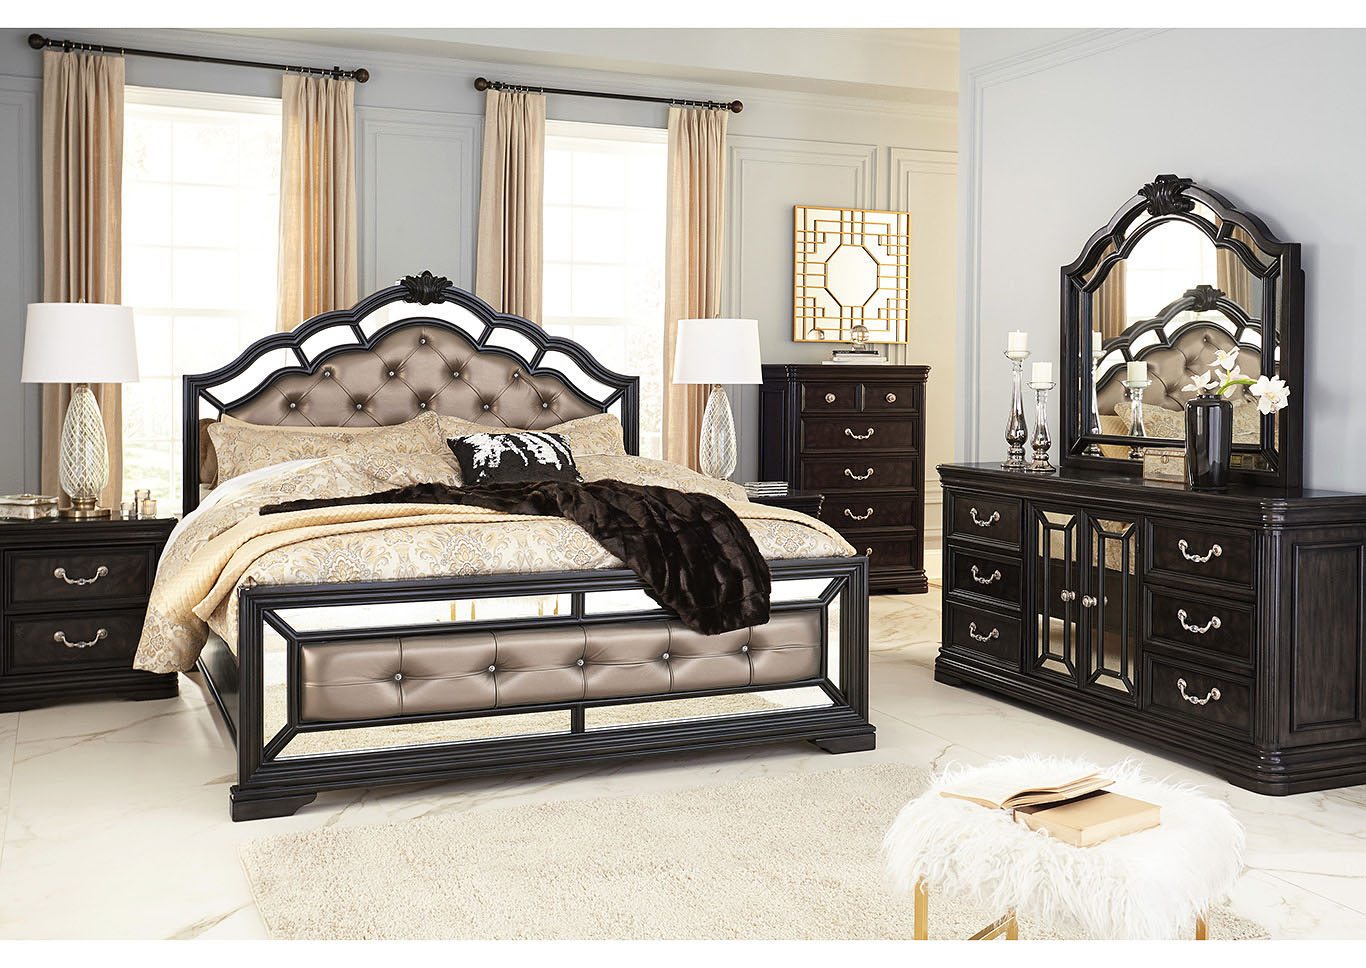 Quinshire Dark Brown Queen Panel Bed w/Dresser & Mirror,Signature Design By Ashley